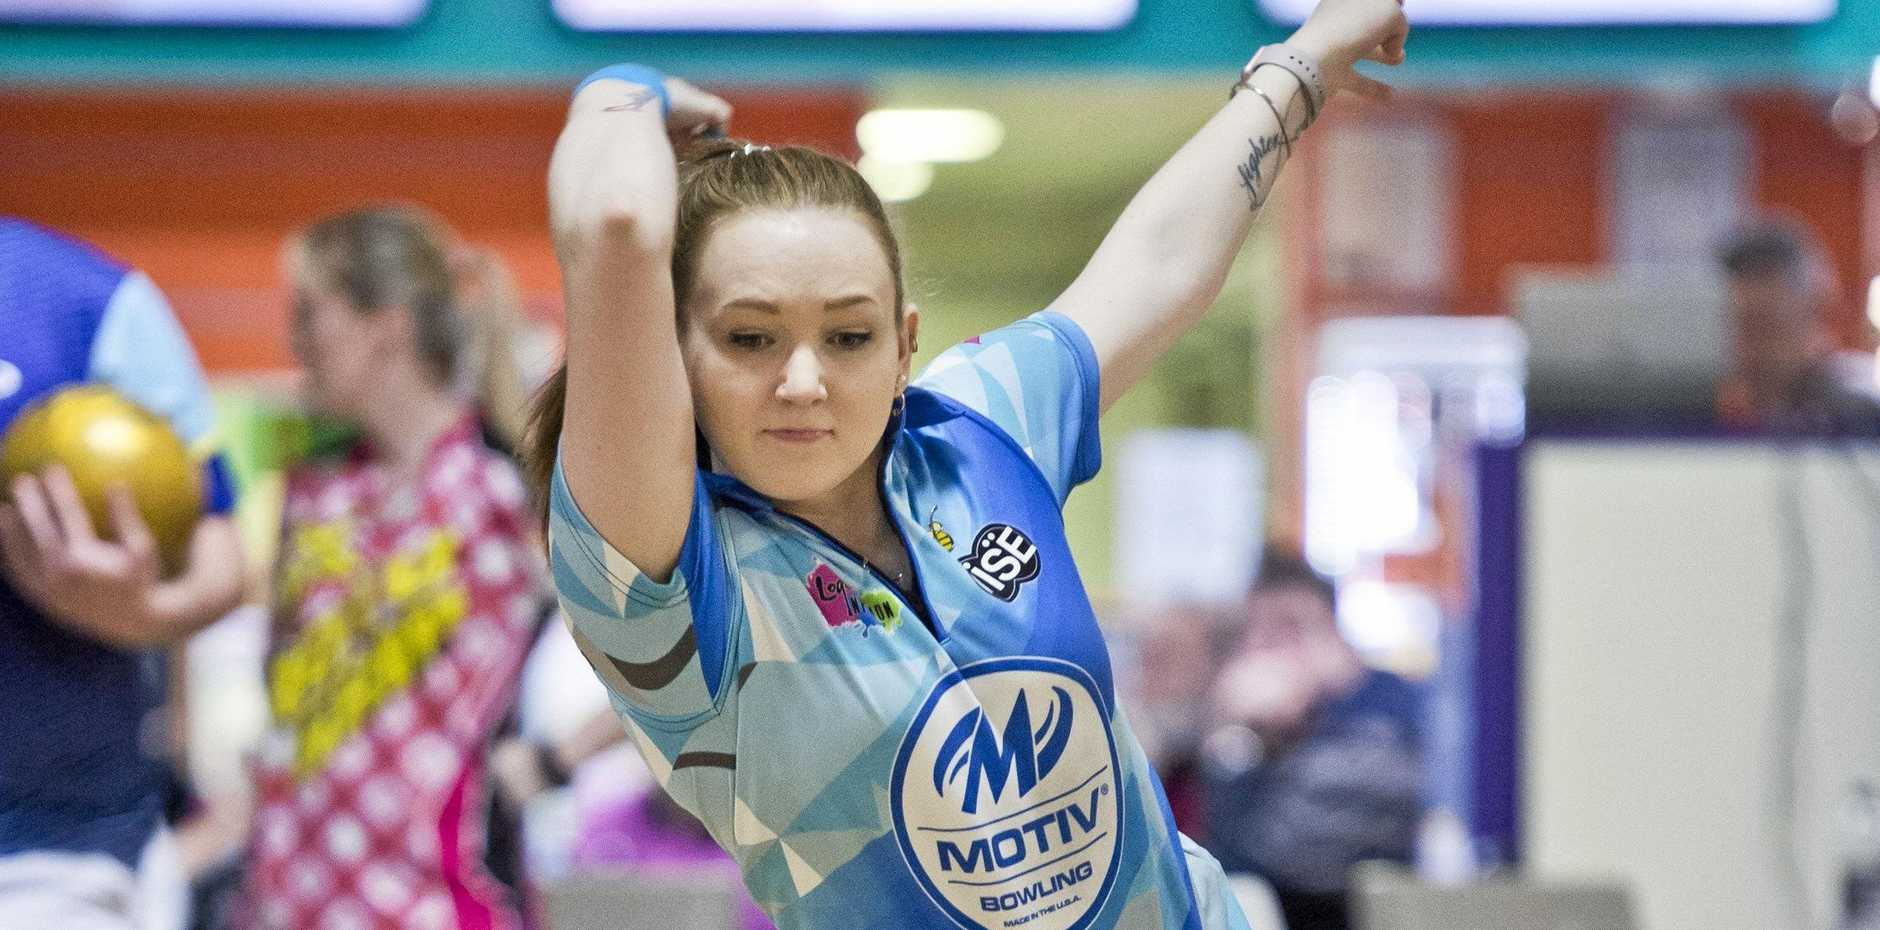 ON A ROLL: Gabrielle Vettiger sends down a shot during the Tenpin Bowling Association of Queensland adult state championships at Sunset Superbowl last year.